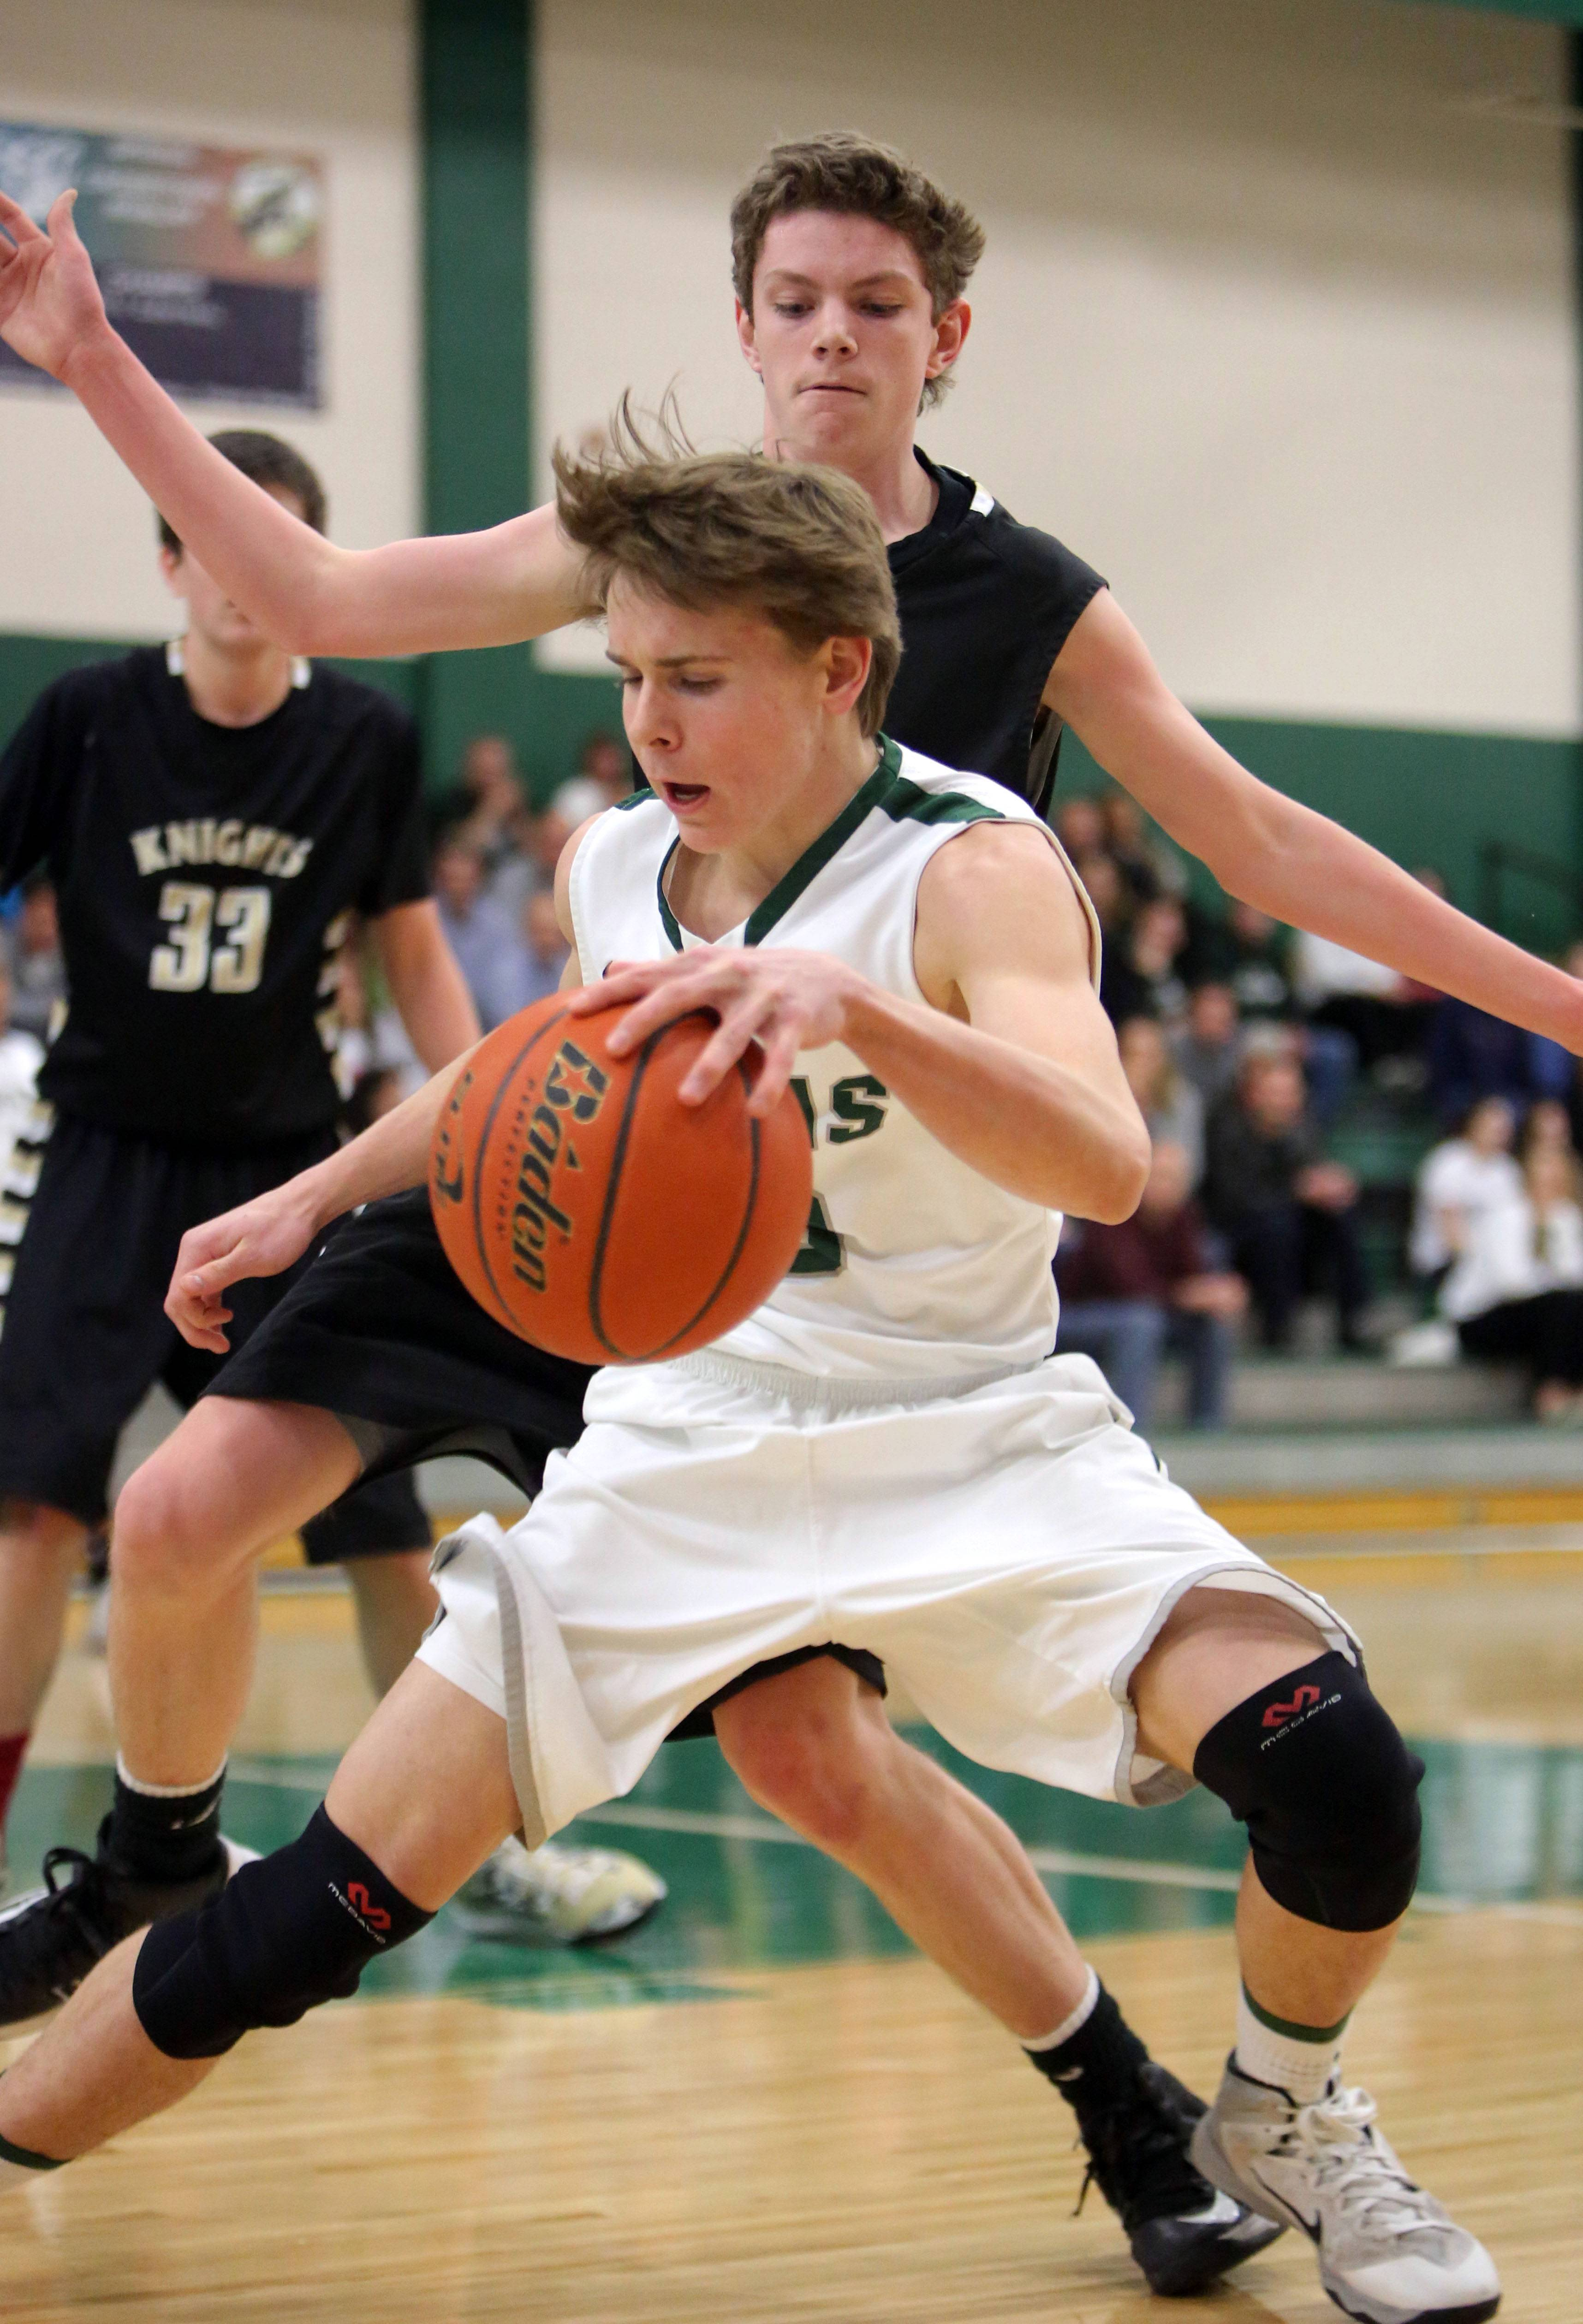 Grayslake Central's Michael Benko, front, tries to escape from Grayslake North's Lucas Buckels on Tuesday night at Grayslake Central.